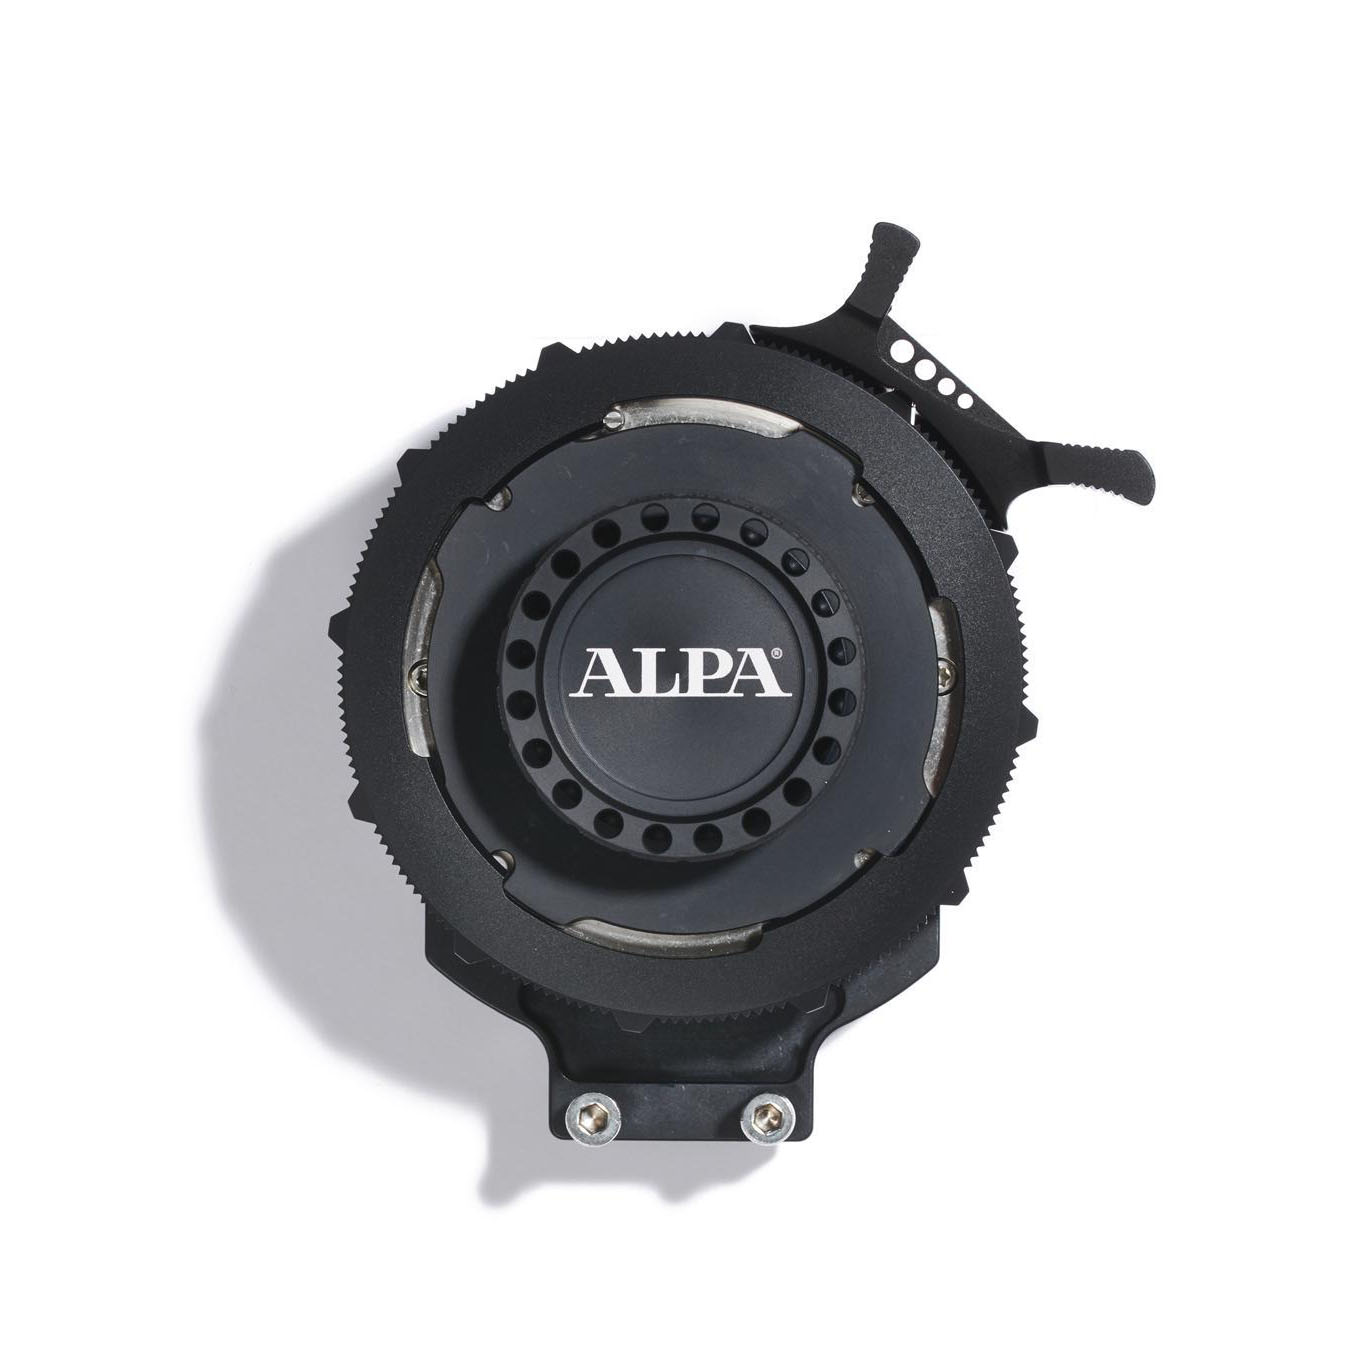 ALPA XO PL Mount for Fuji GFX